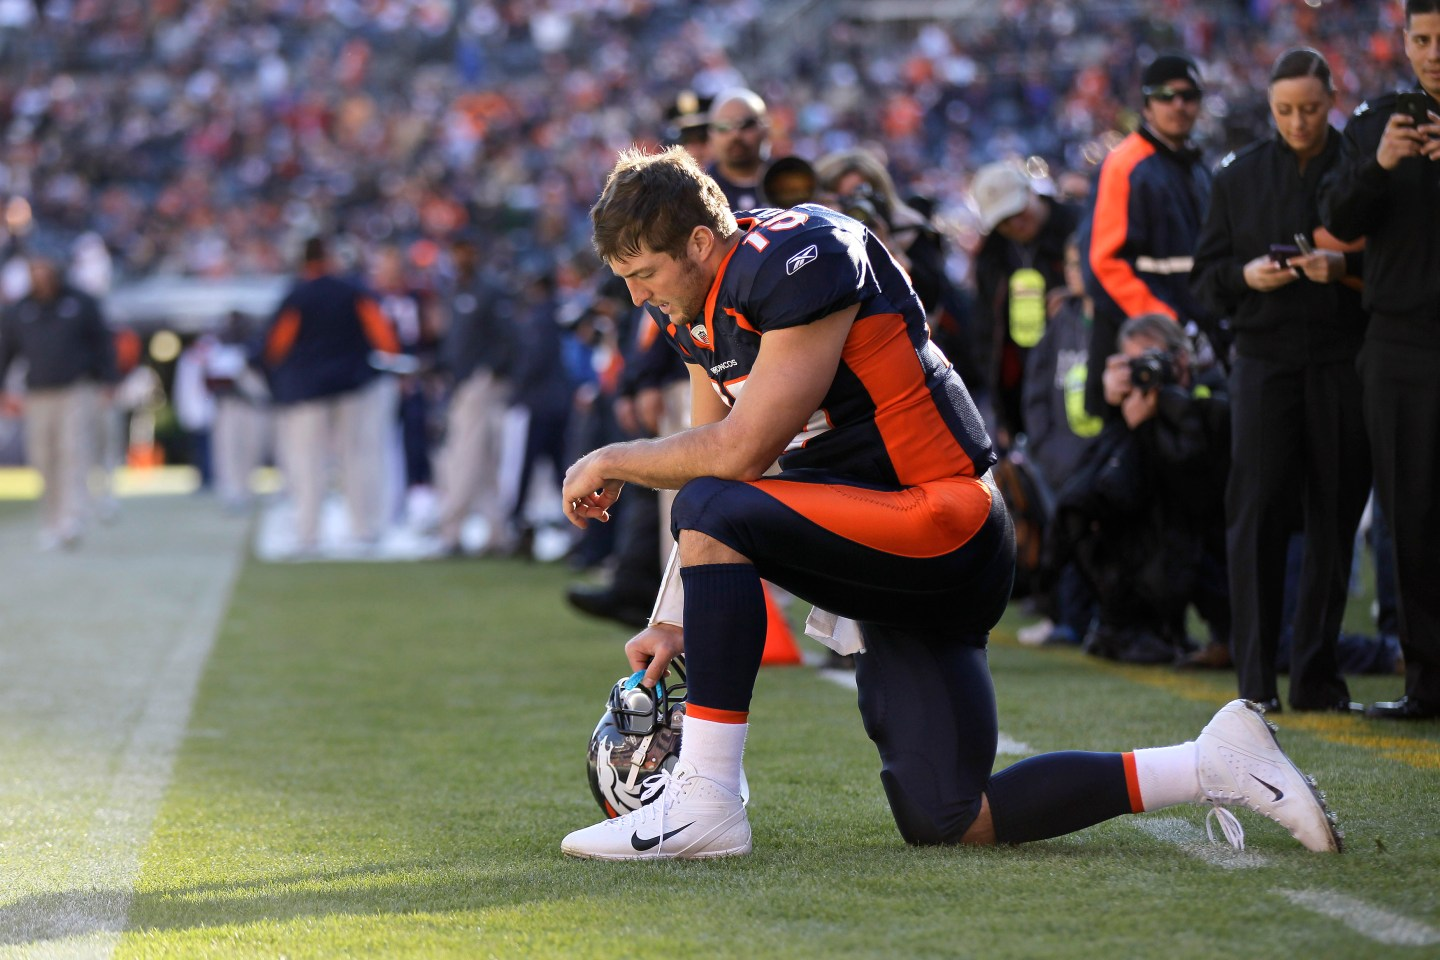 Christians In Sports - TIM TEBOW